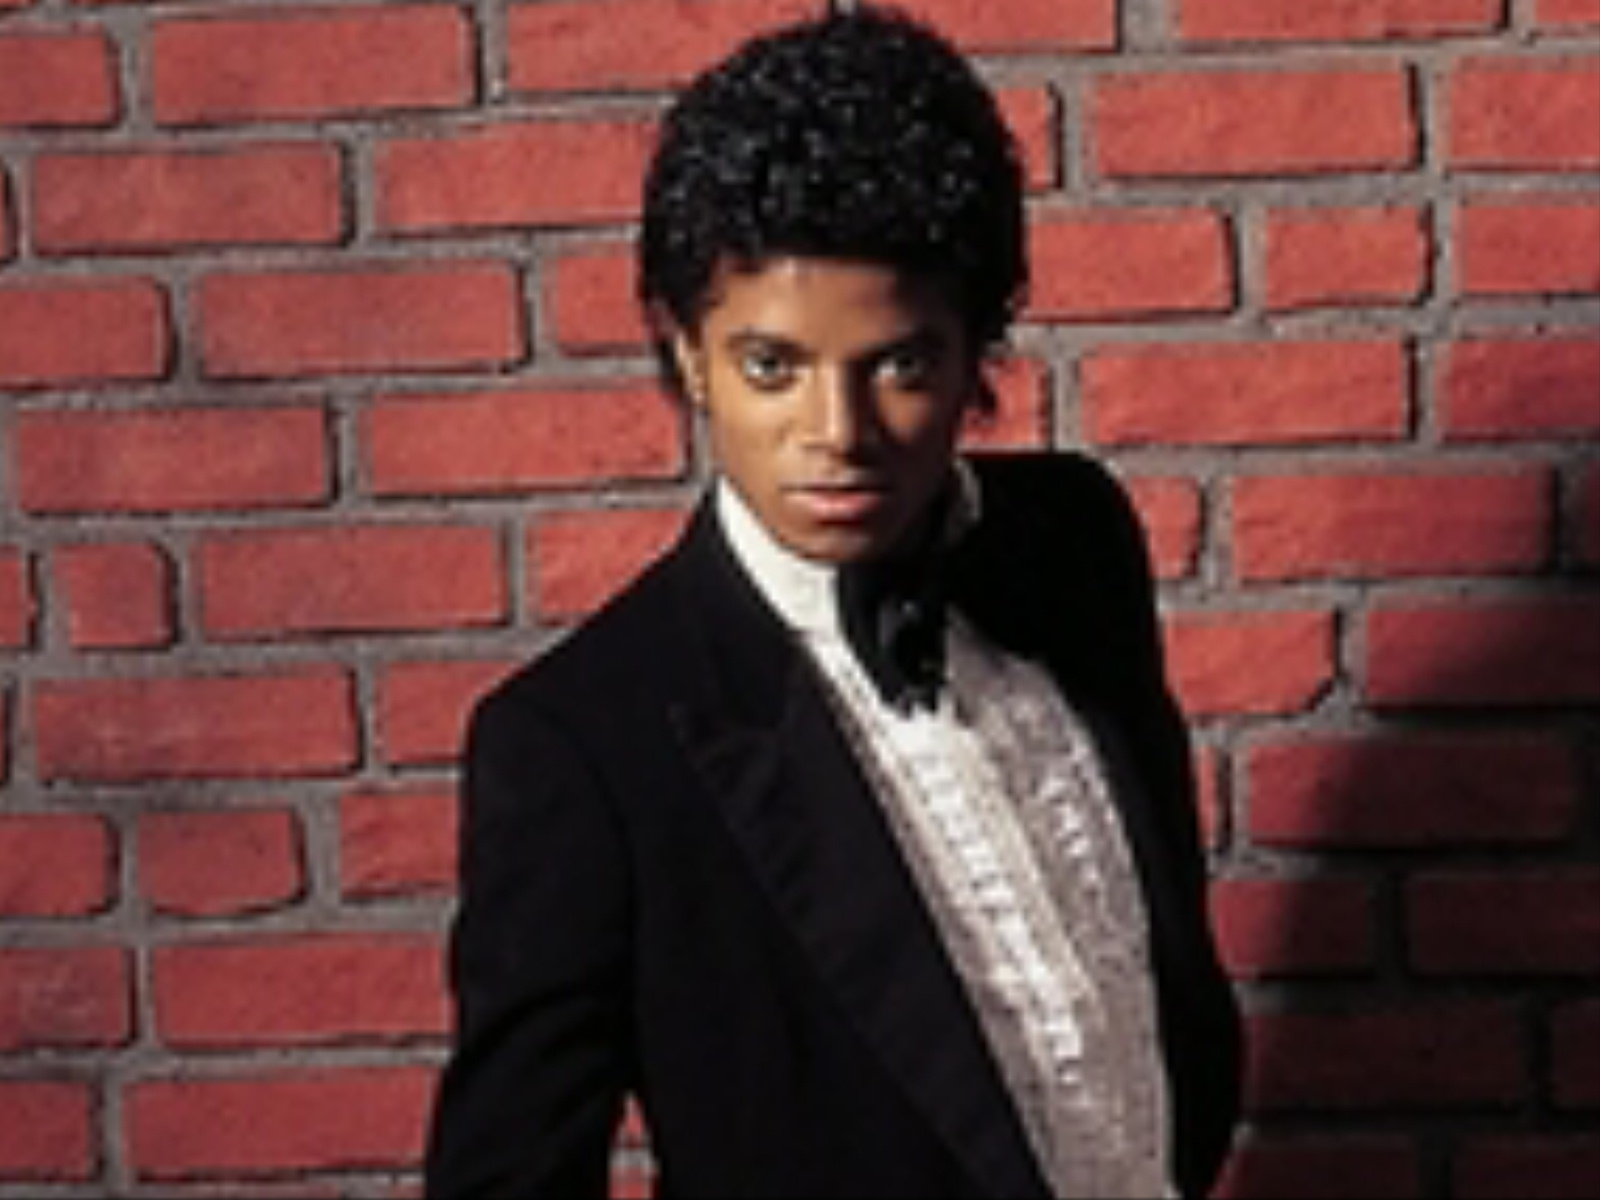 the musical career of michael jackson Michael's music career began with the formation of the jackson 5 in 1963, when he joined his brothers, jackie, tito, marlon, and jermaine in their already booming musical group this was the start of michael's singing career.